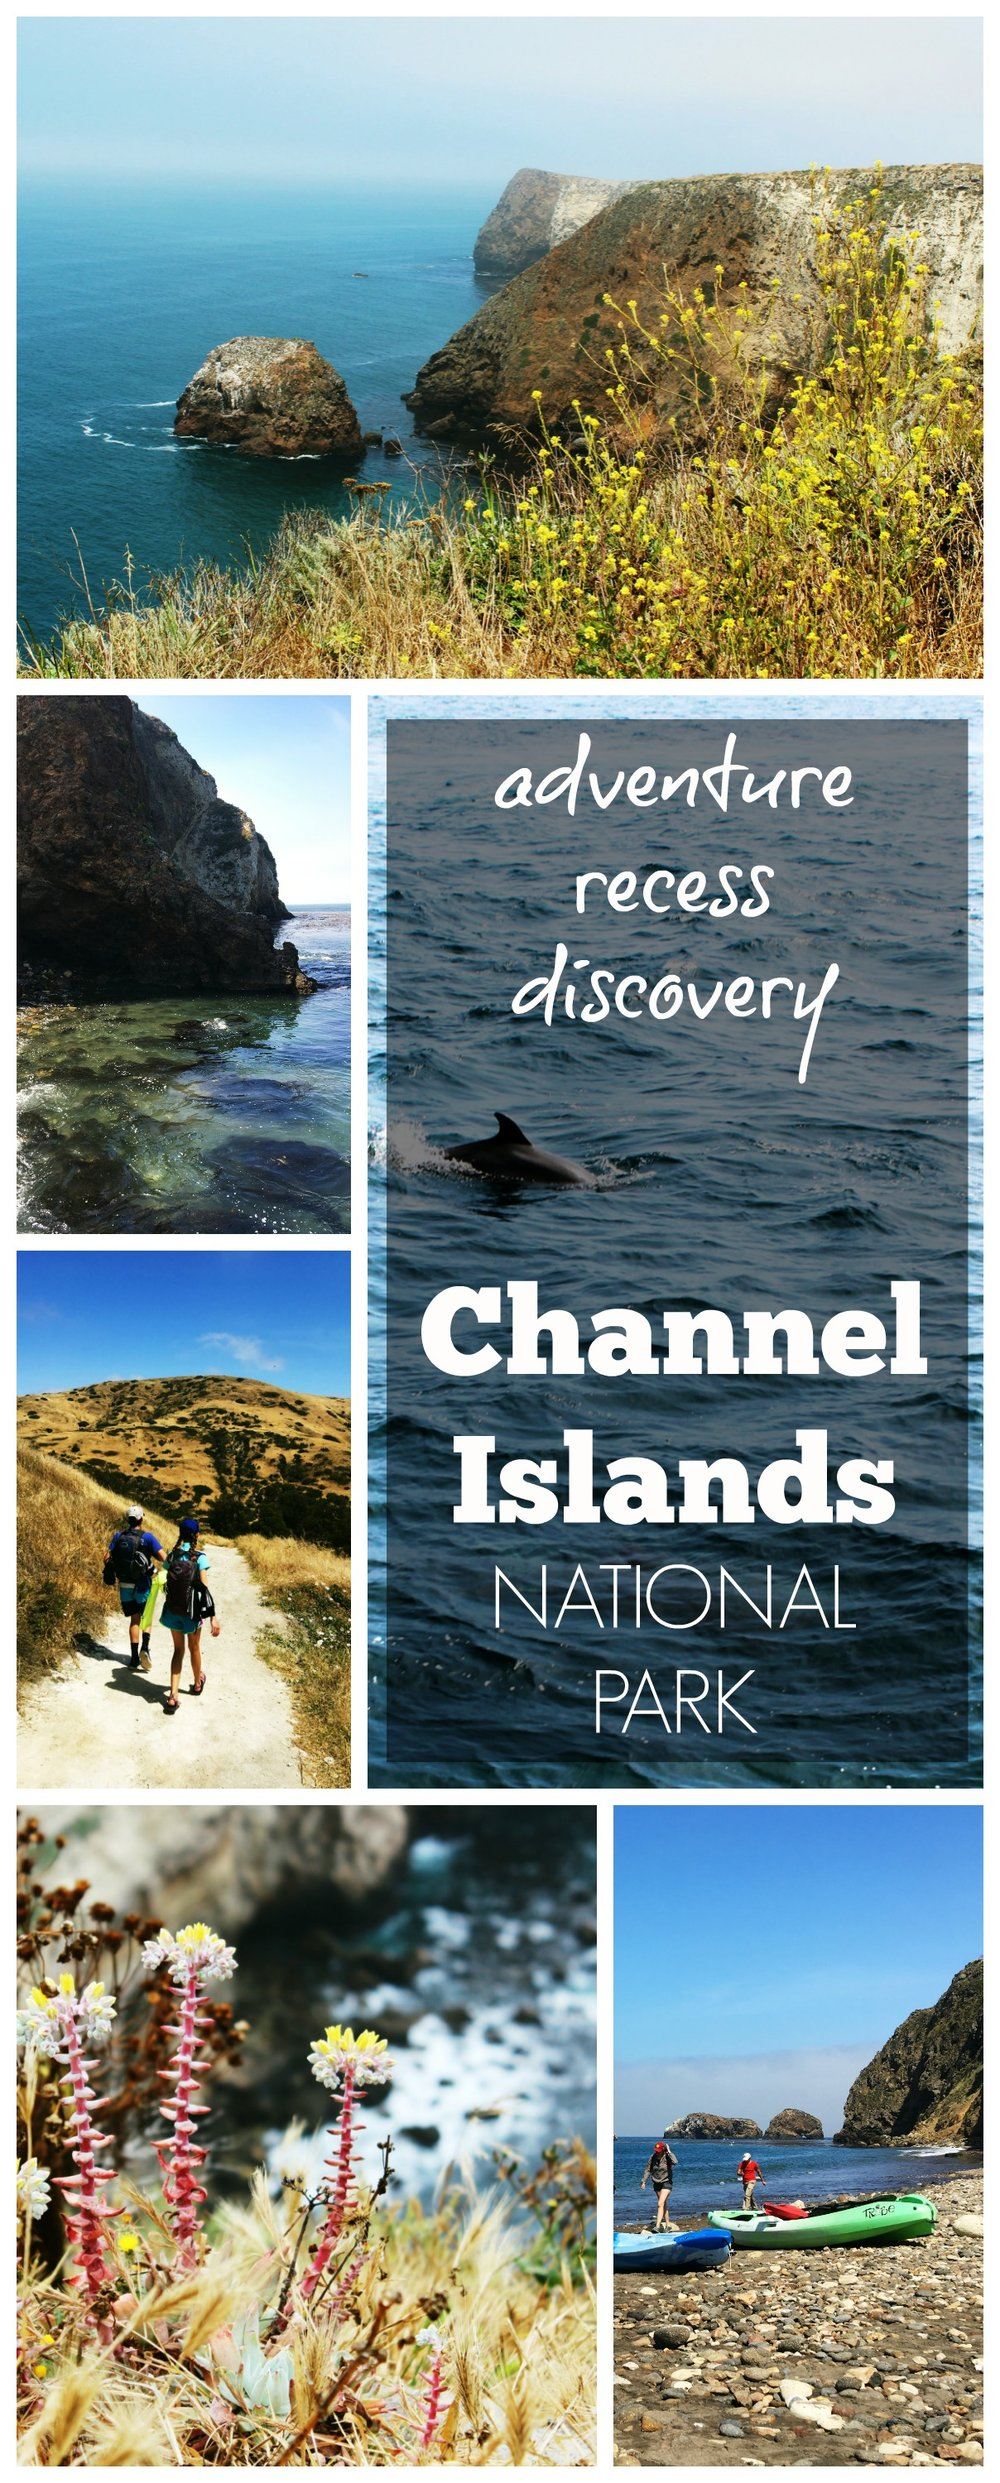 Channel Islands PIN adventure.jpg